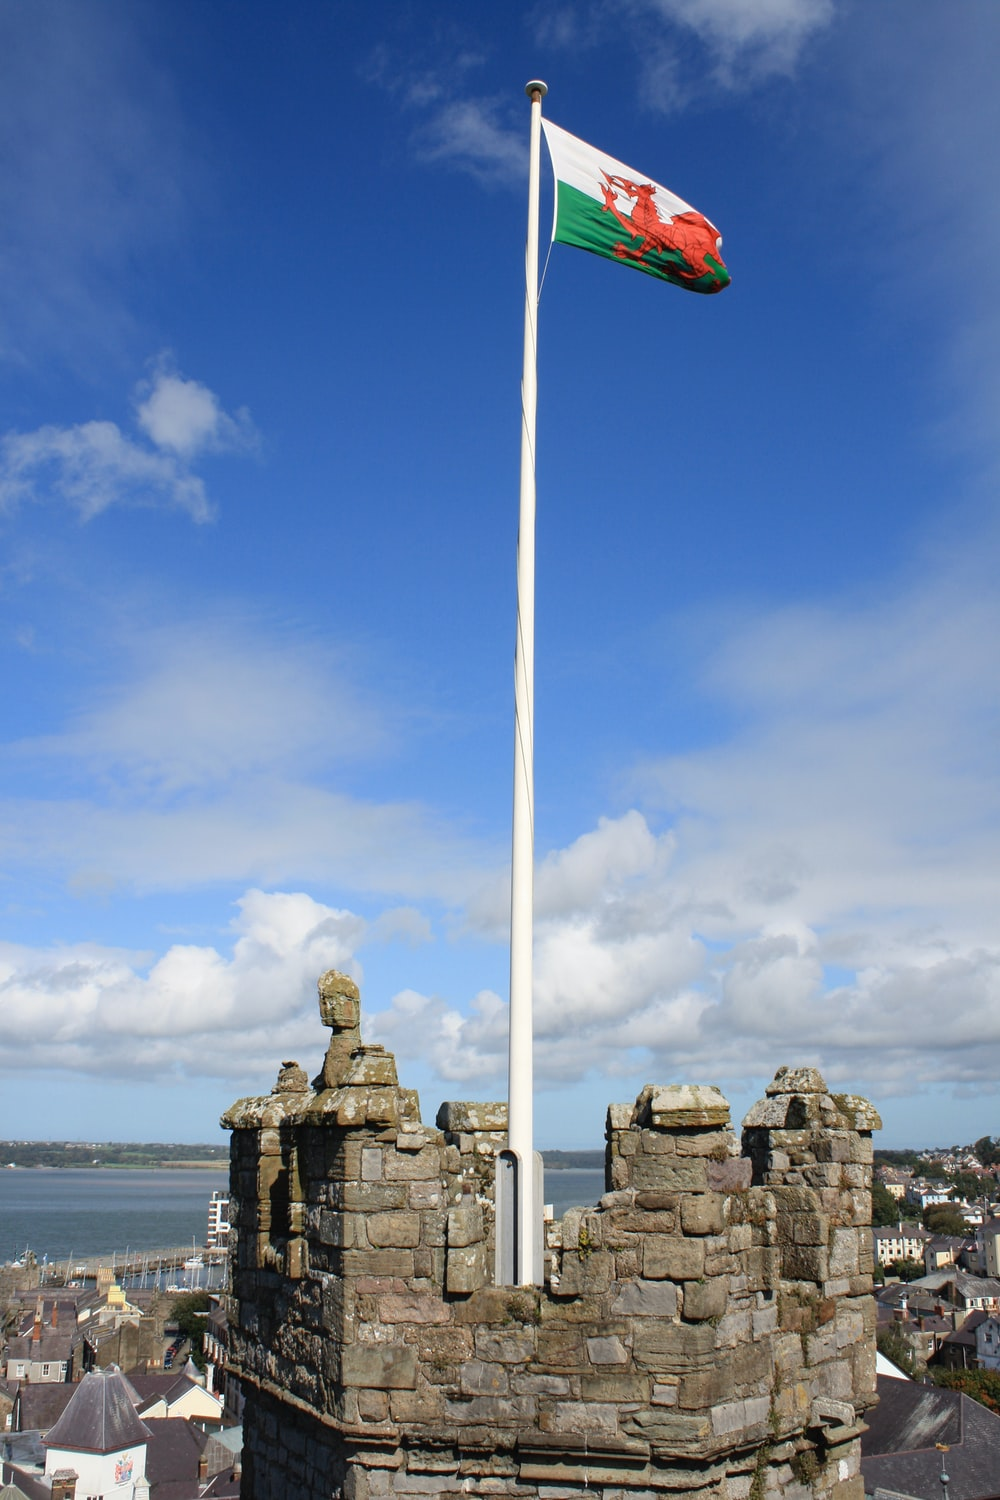 white and blue flag on top of gray rock formation near body of water during daytime